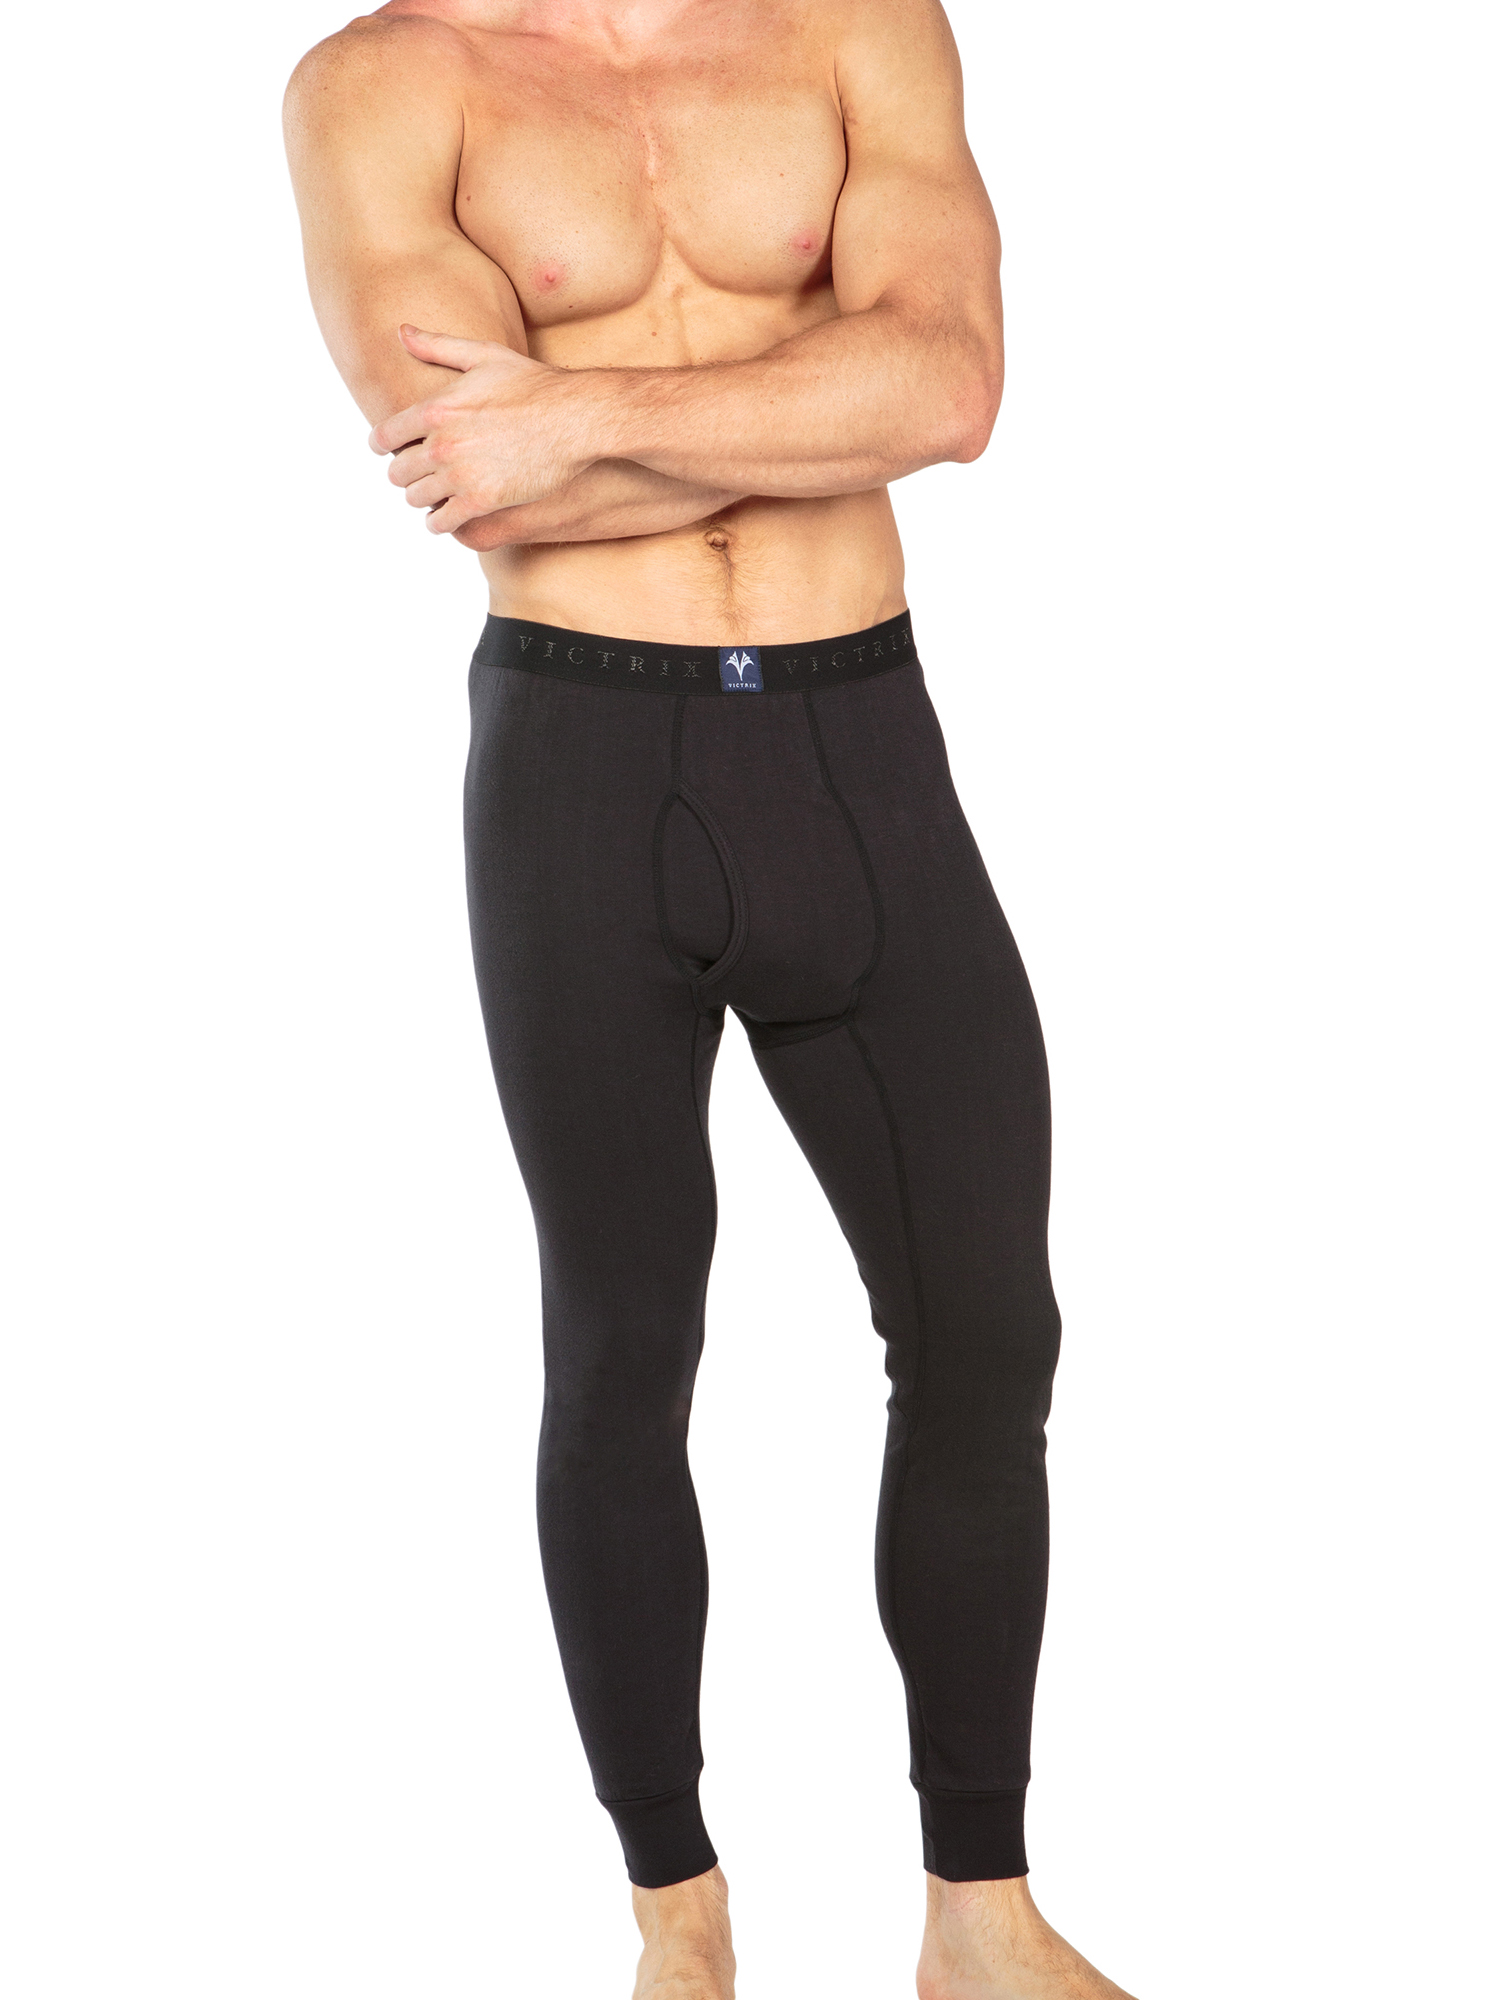 Men-039-s-Thermal-Underwear-Long-John-Pants-Luxury-Base-Layer-Thermals-for-Men miniatuur 5